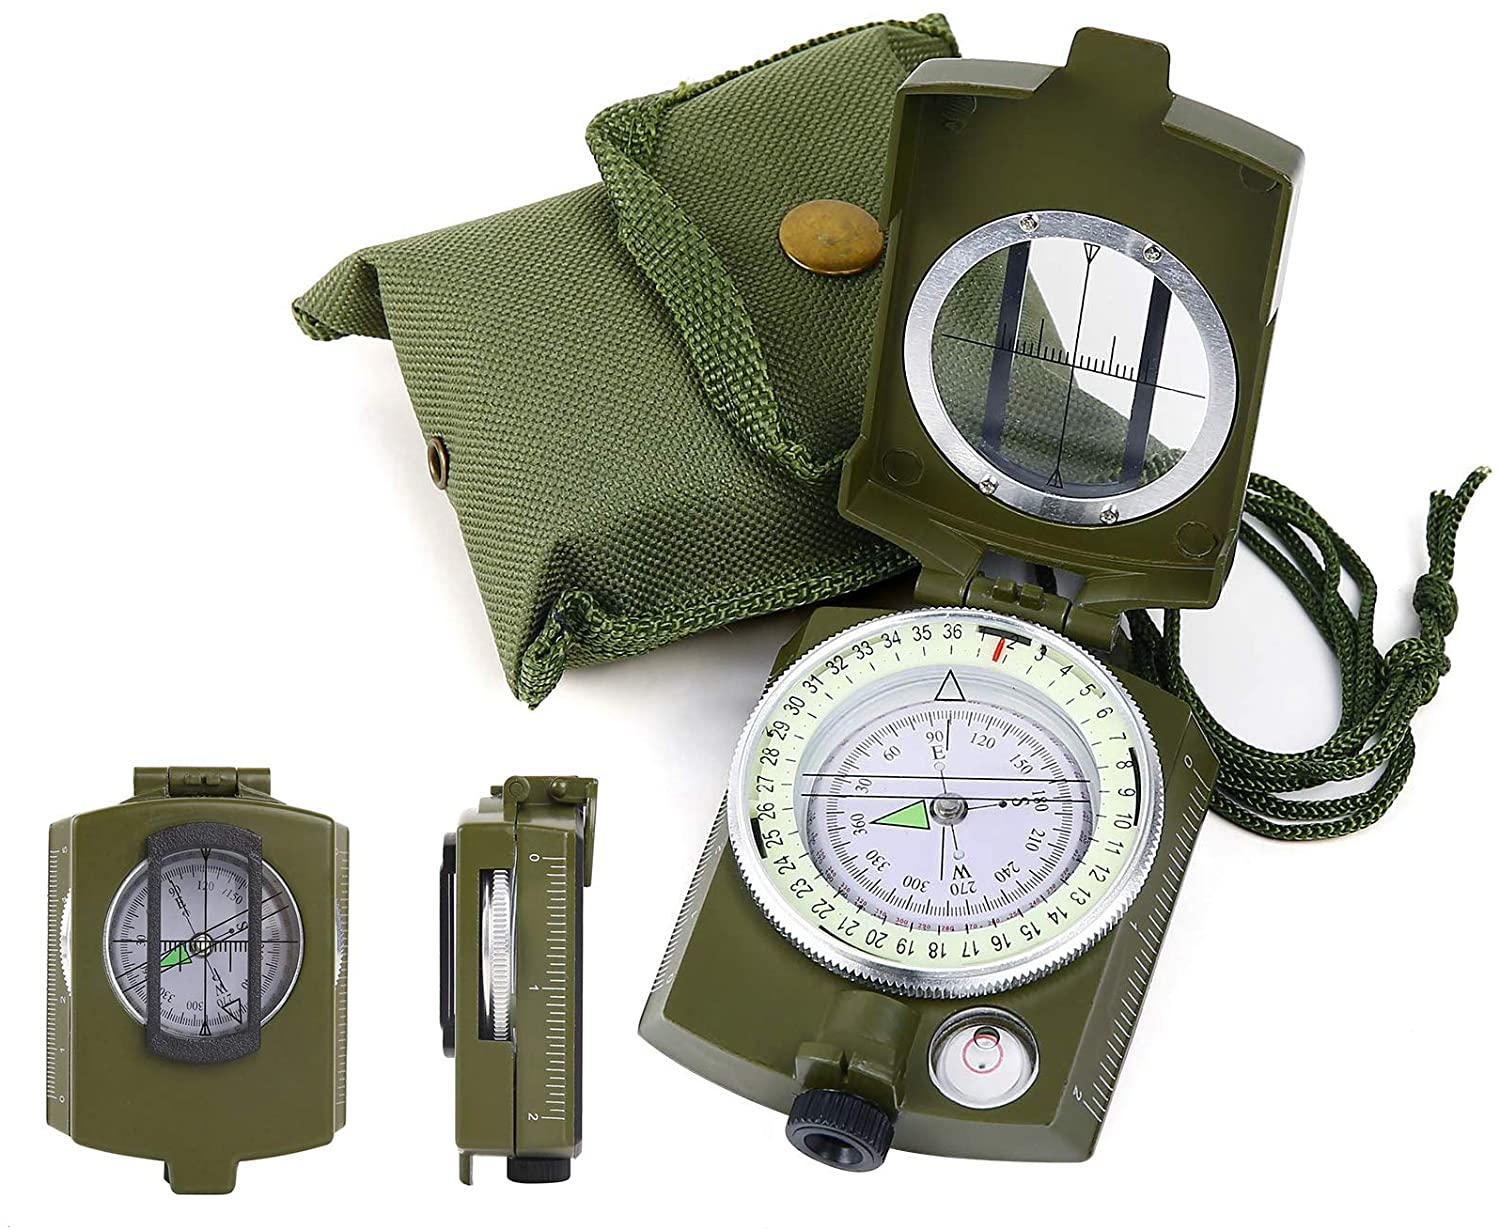 Sohapy Compass Military Sighting Compass Heavy Duties Camping Survival Compass with in Clinometer and Carry Bag for Camping Hiking Pole Boating Backpacking Geography Army Green